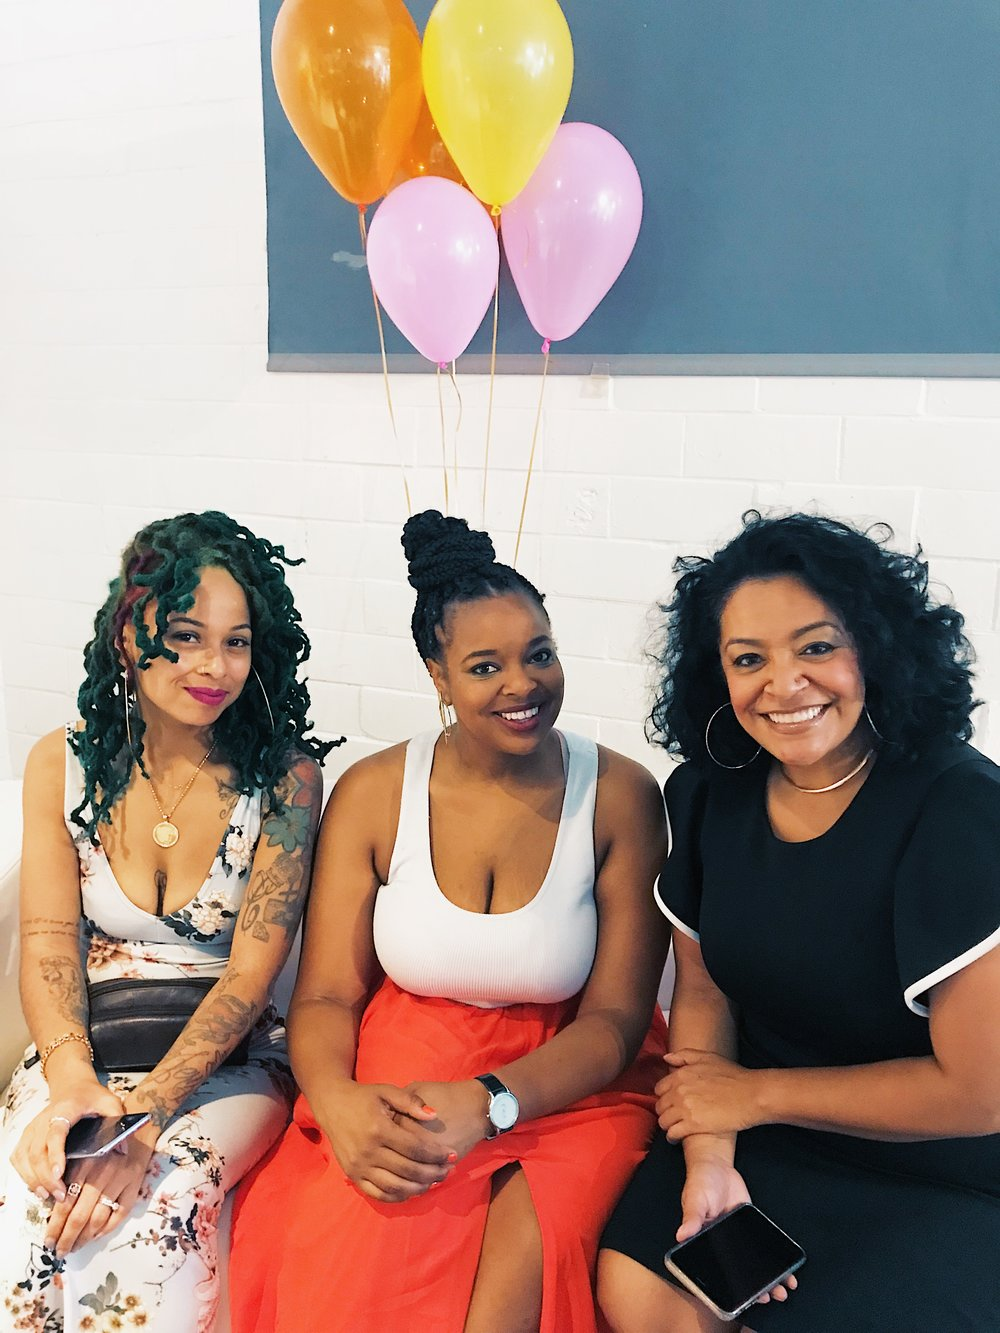 (From left to right) Celeste, Eboni Harris, Eliza Boquin